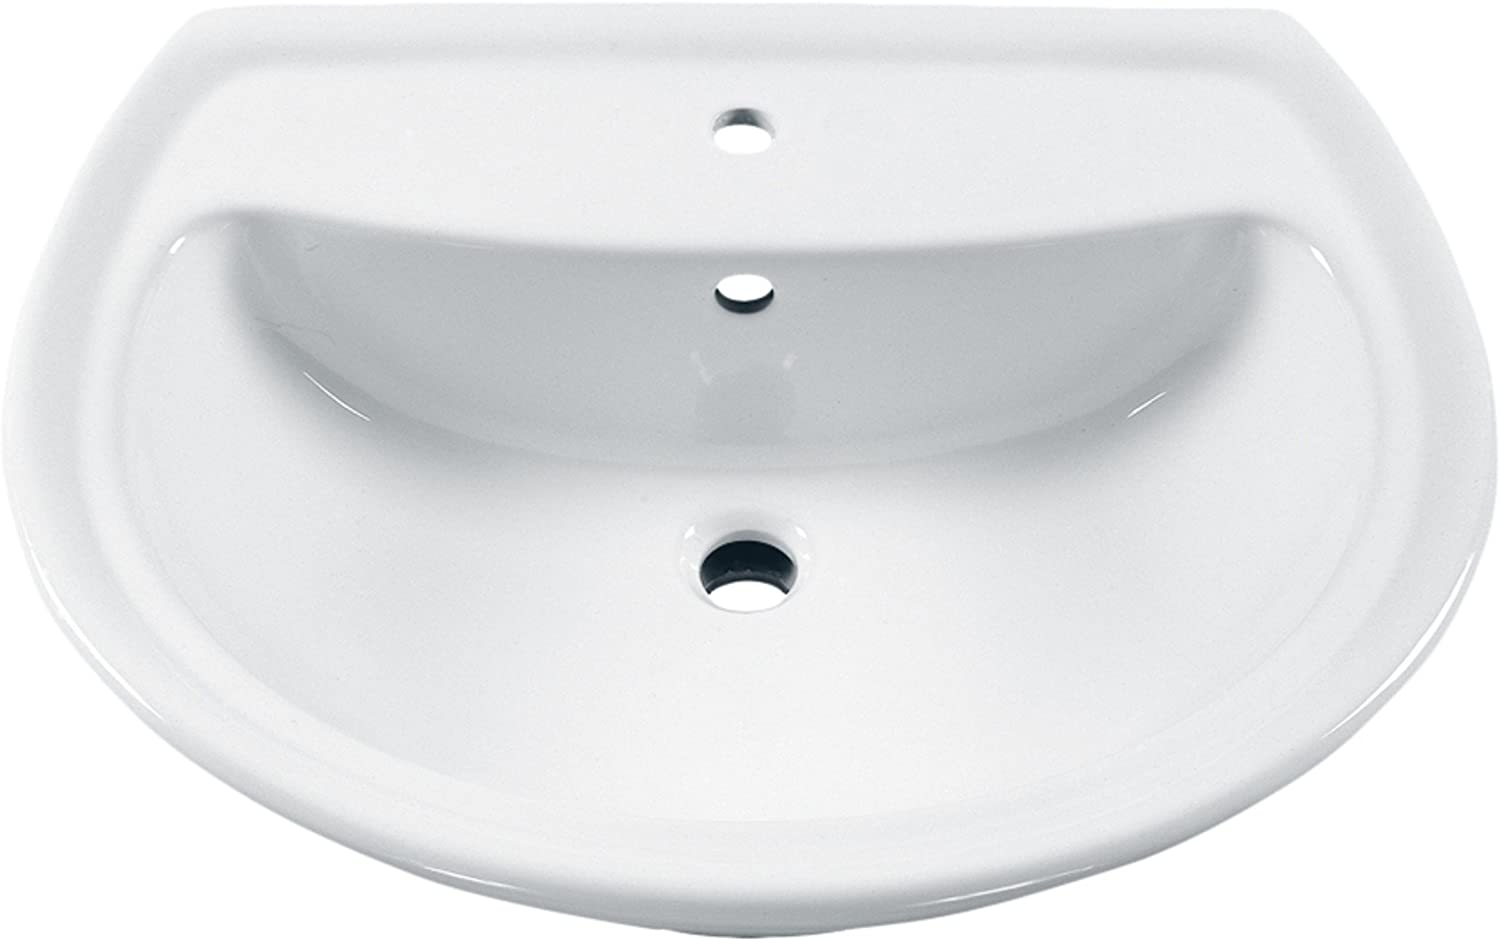 American Standard 0236001.020 Cadet Pedestal with Ranking TOP6 Lavatory Top Memphis Mall S